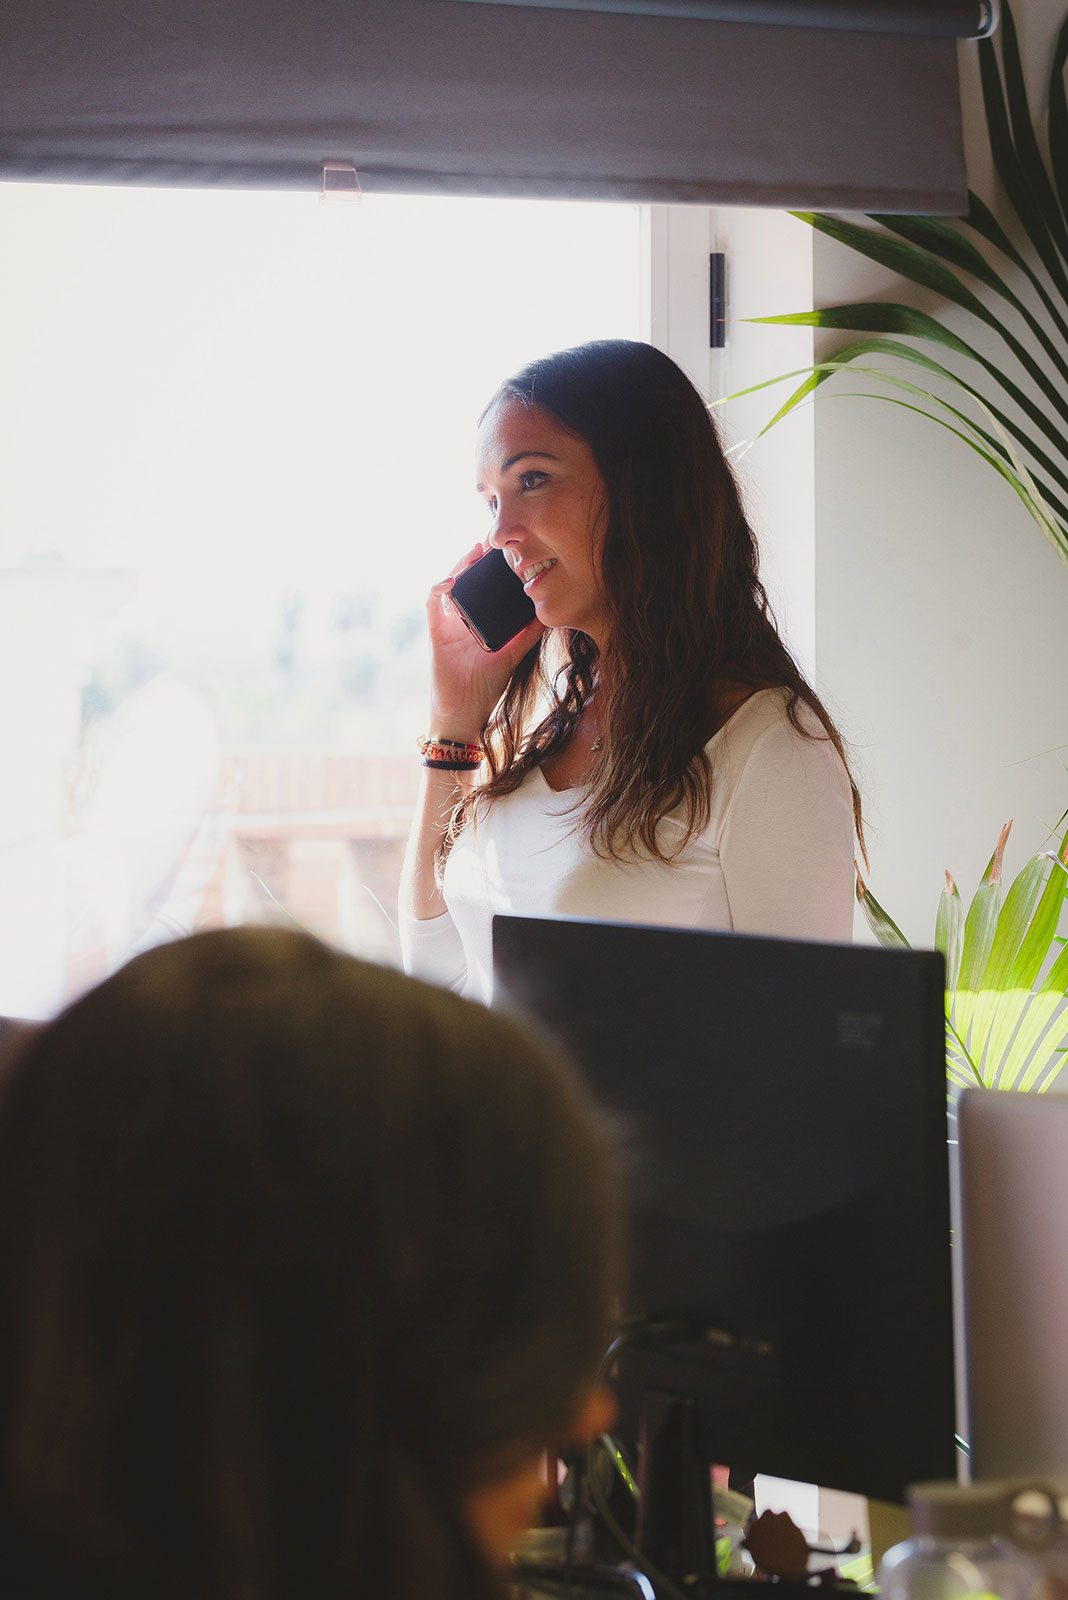 Professional woman in office and smiling on phone